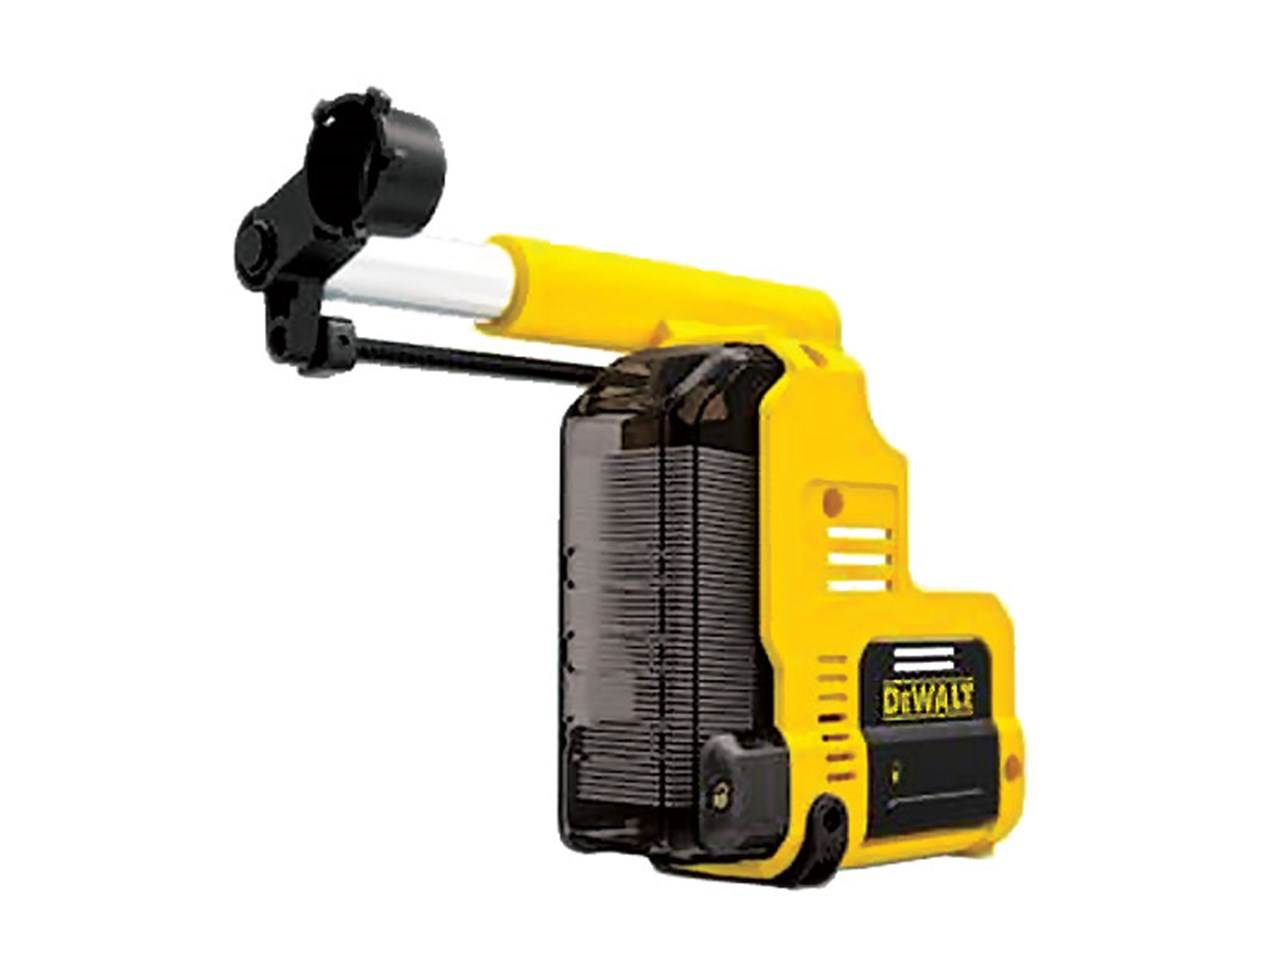 Dewalt Dust Extractor >> Dewalt D25303dh 18v Cordless Dust Extraction System Bare Unit